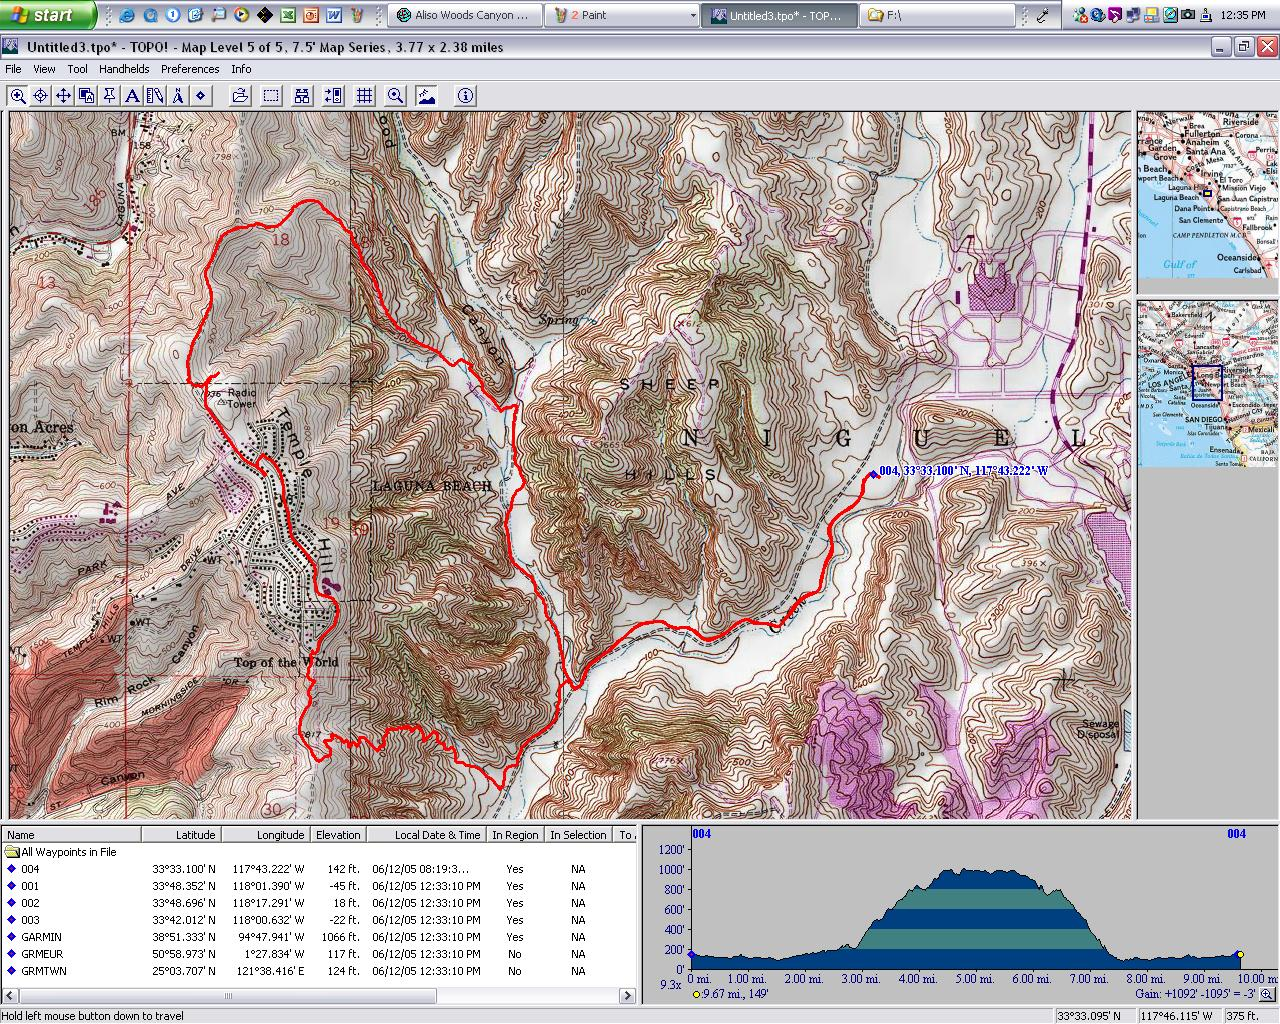 Current Image is BFelsted/Aliso_Woods_Canyon_topo.JPG Clicking here will display Aliso_Crieek_Trail_log.JPG